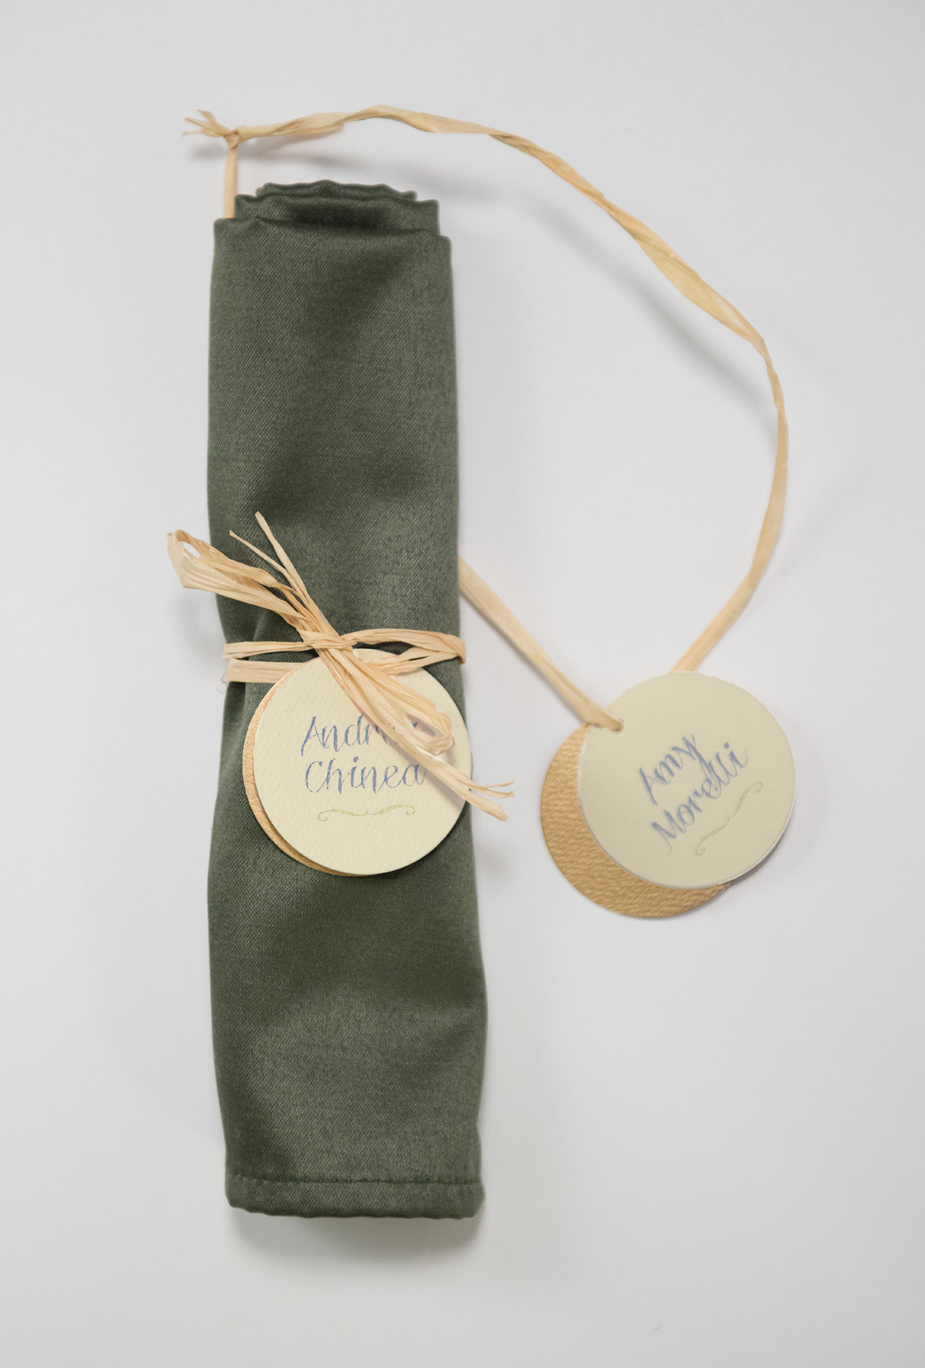 Greenery Event-Napkin Ring Placecard.jpg